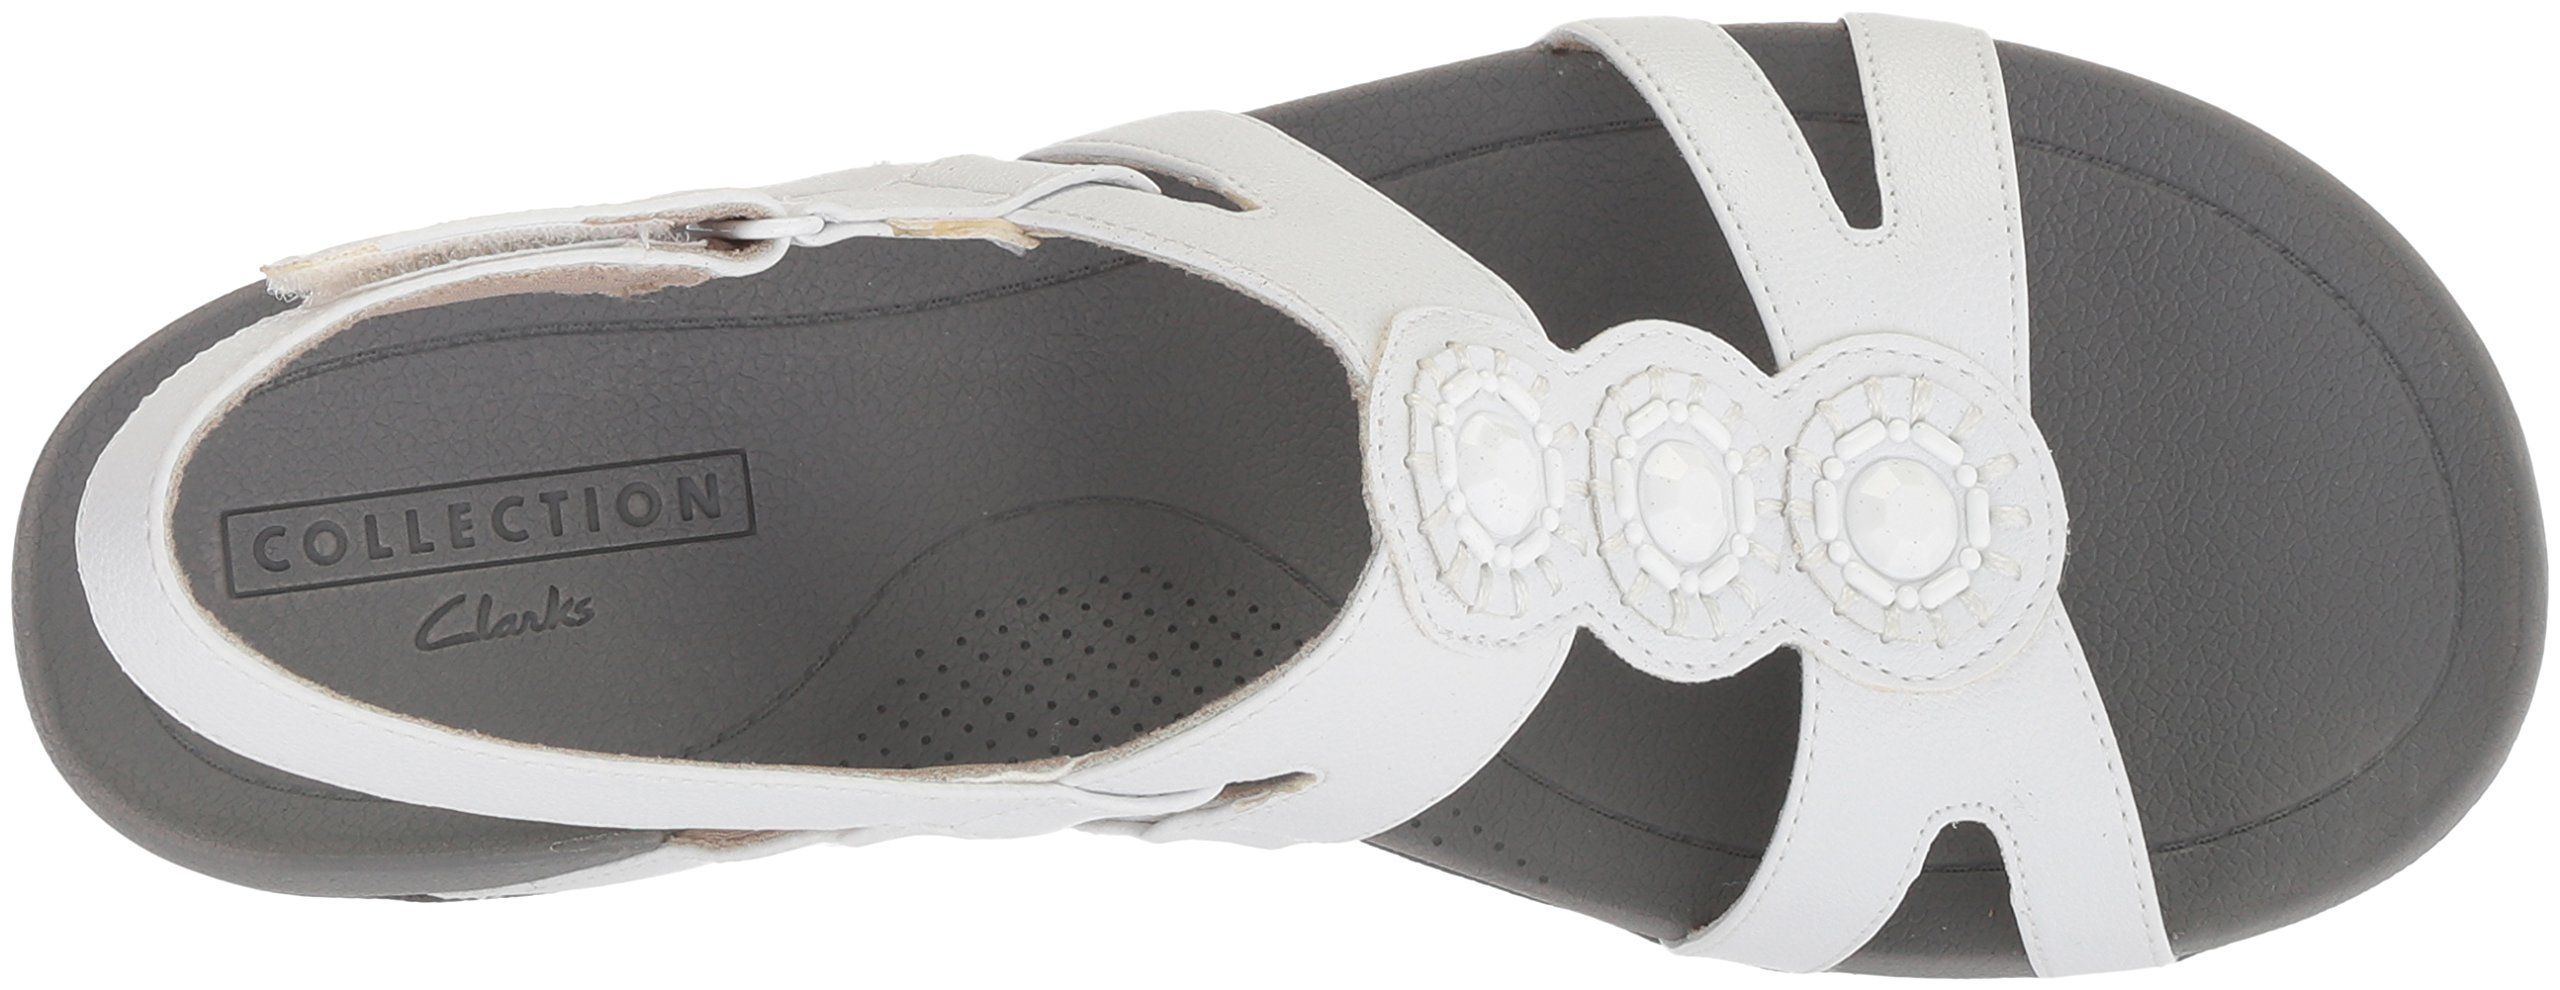 516d9940a6a CLARKS Womens Pical Serino Platform White Synthetic 9 Medium US   To view  further for this item